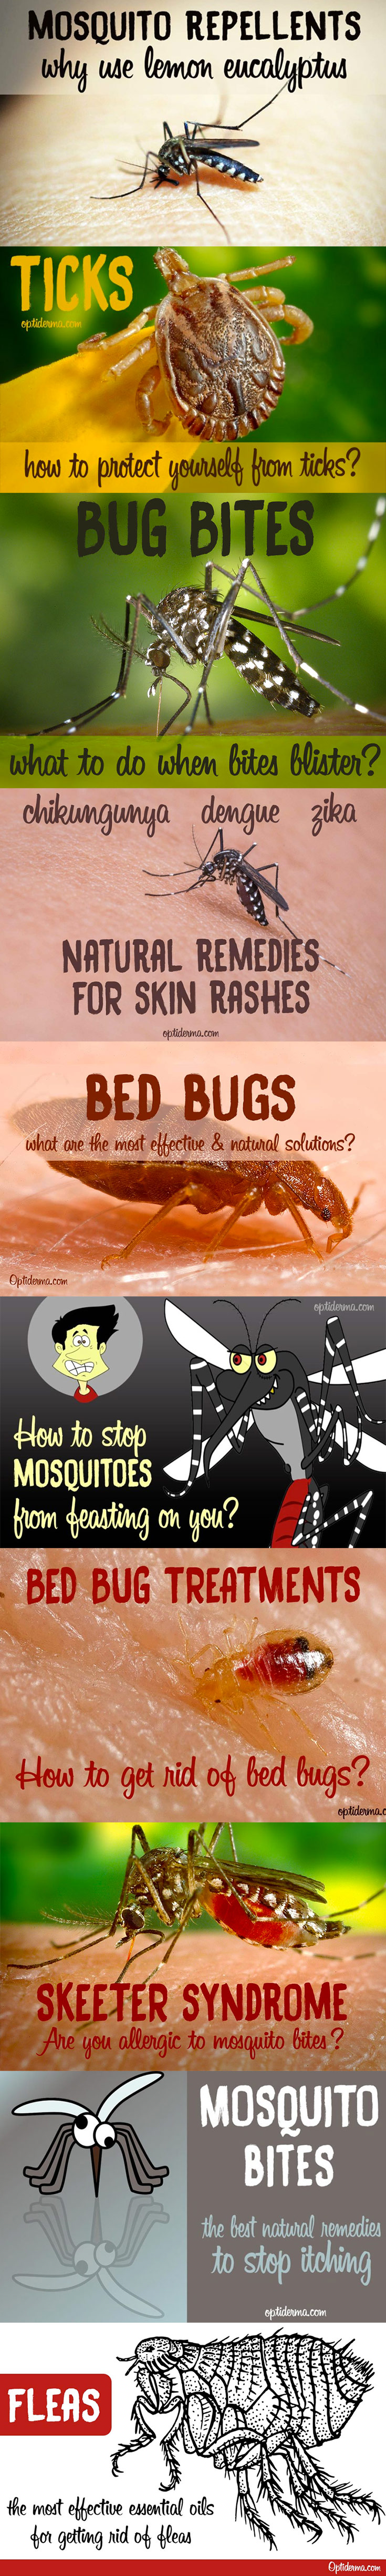 Insect Bites How to Prevent & Treat Mosquito, Tick